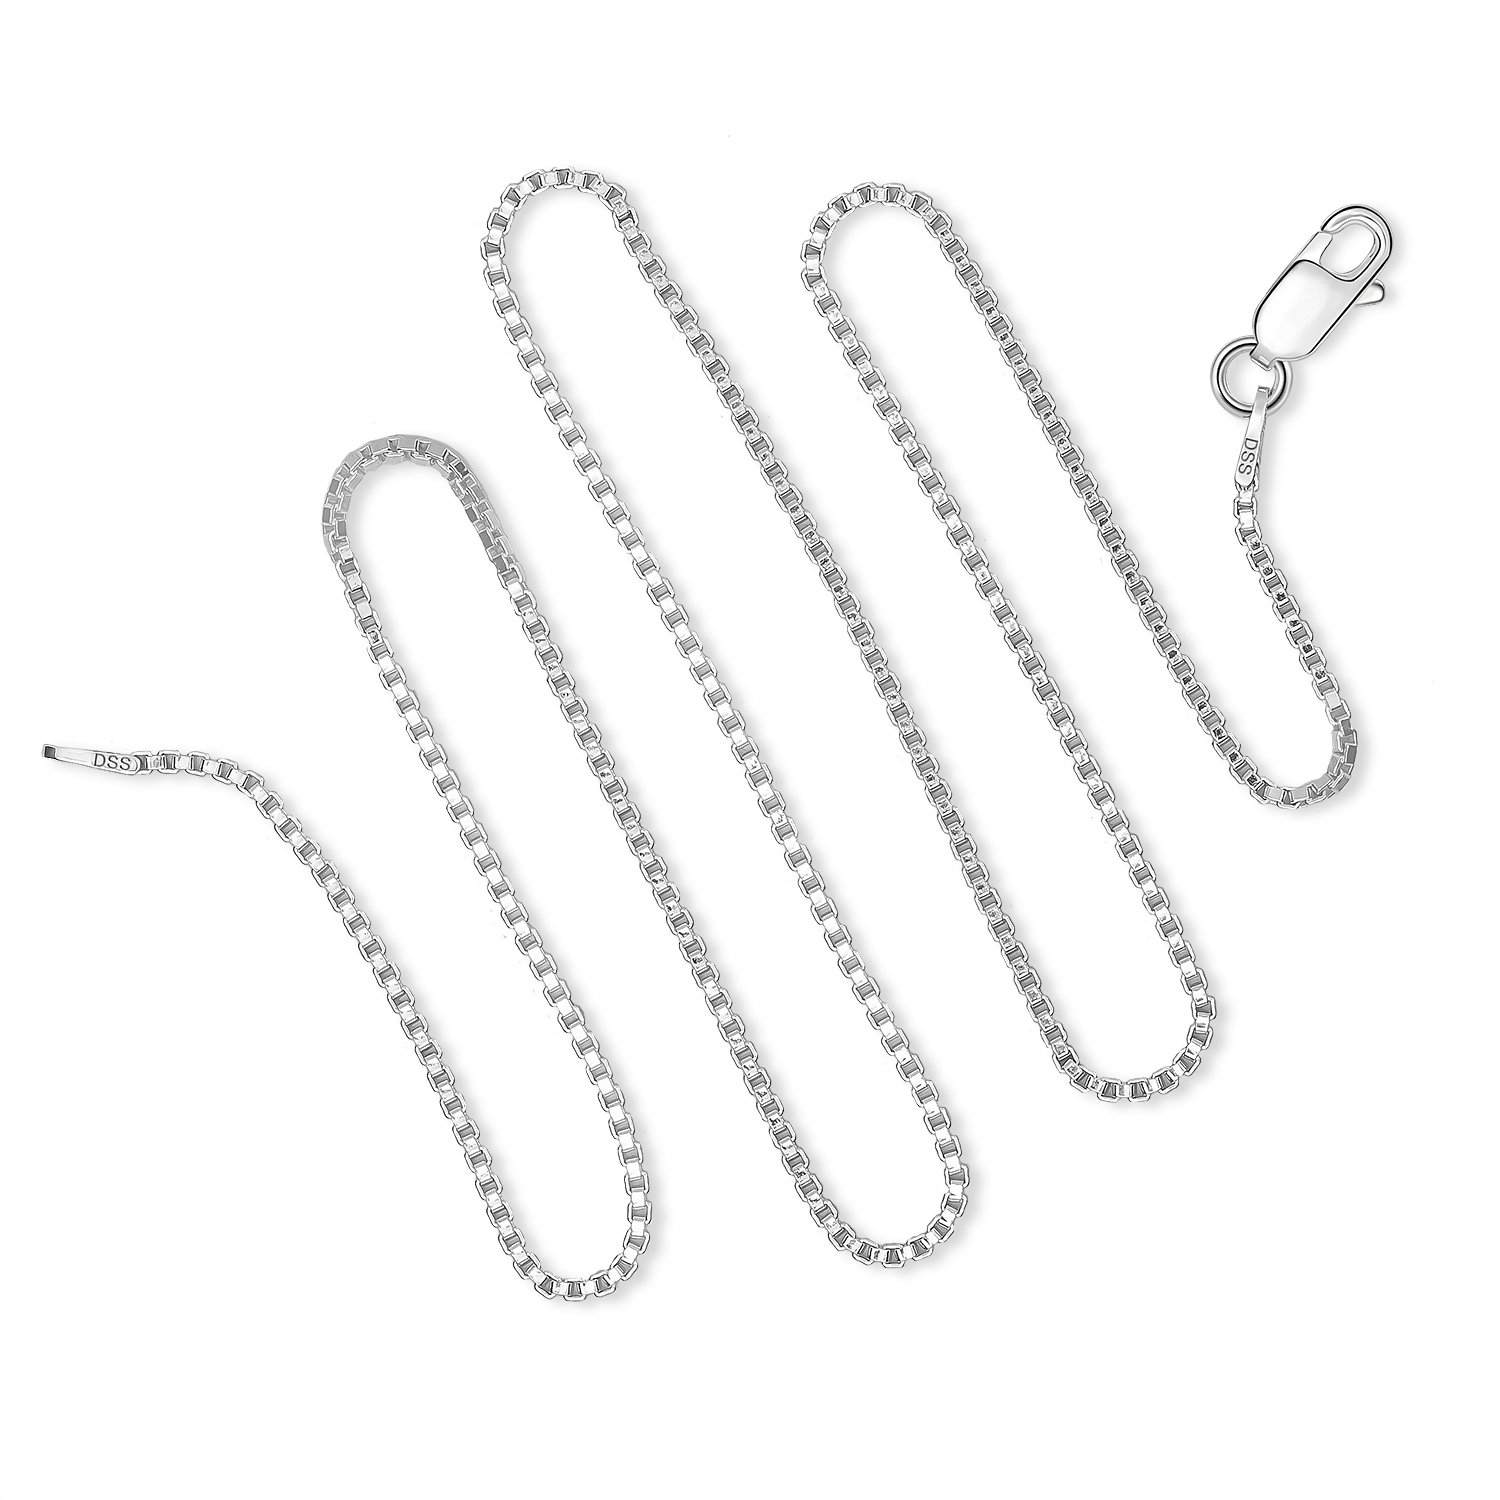 925 Sterling Silver 1.5 MM Box Chain Italian Necklace Sturdy Lightweight - Lobster Claw Clasp 24 Inch